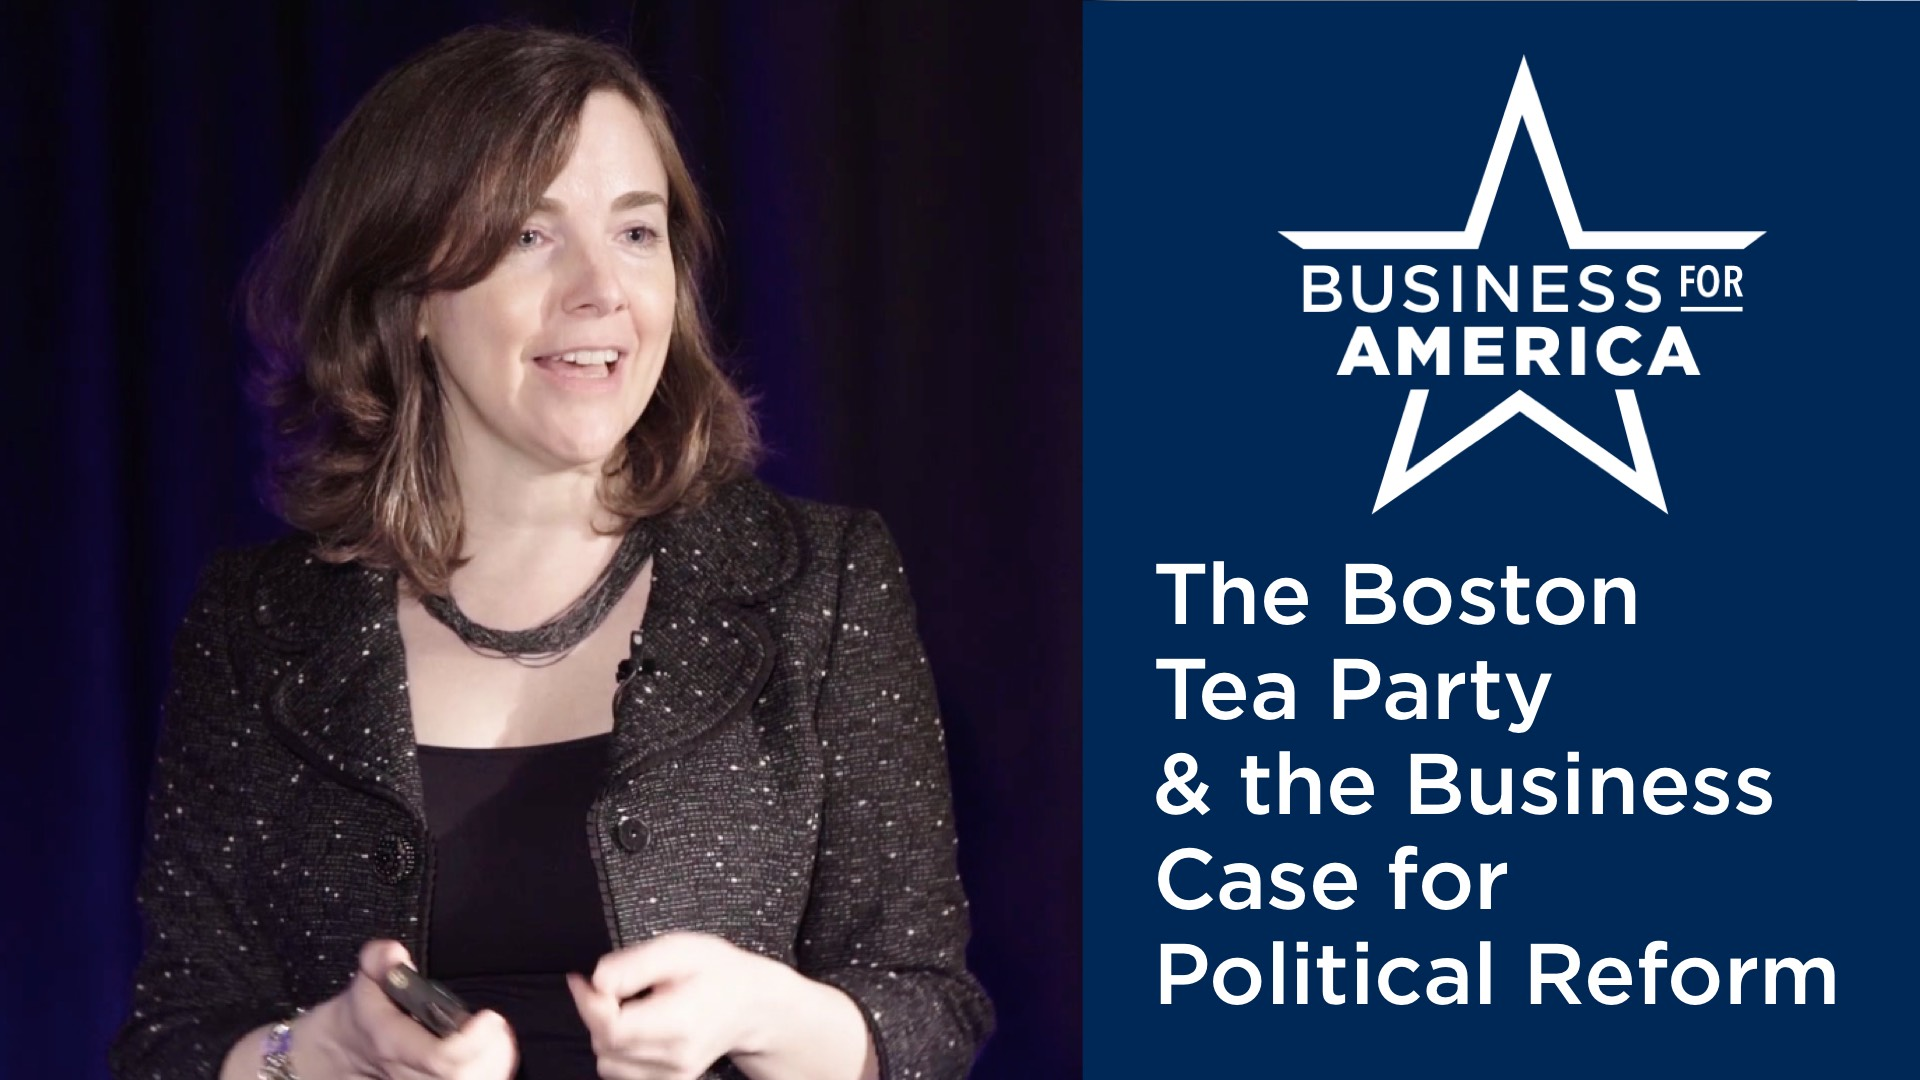 The Boston Tea Party & the Business Case for Political Reform